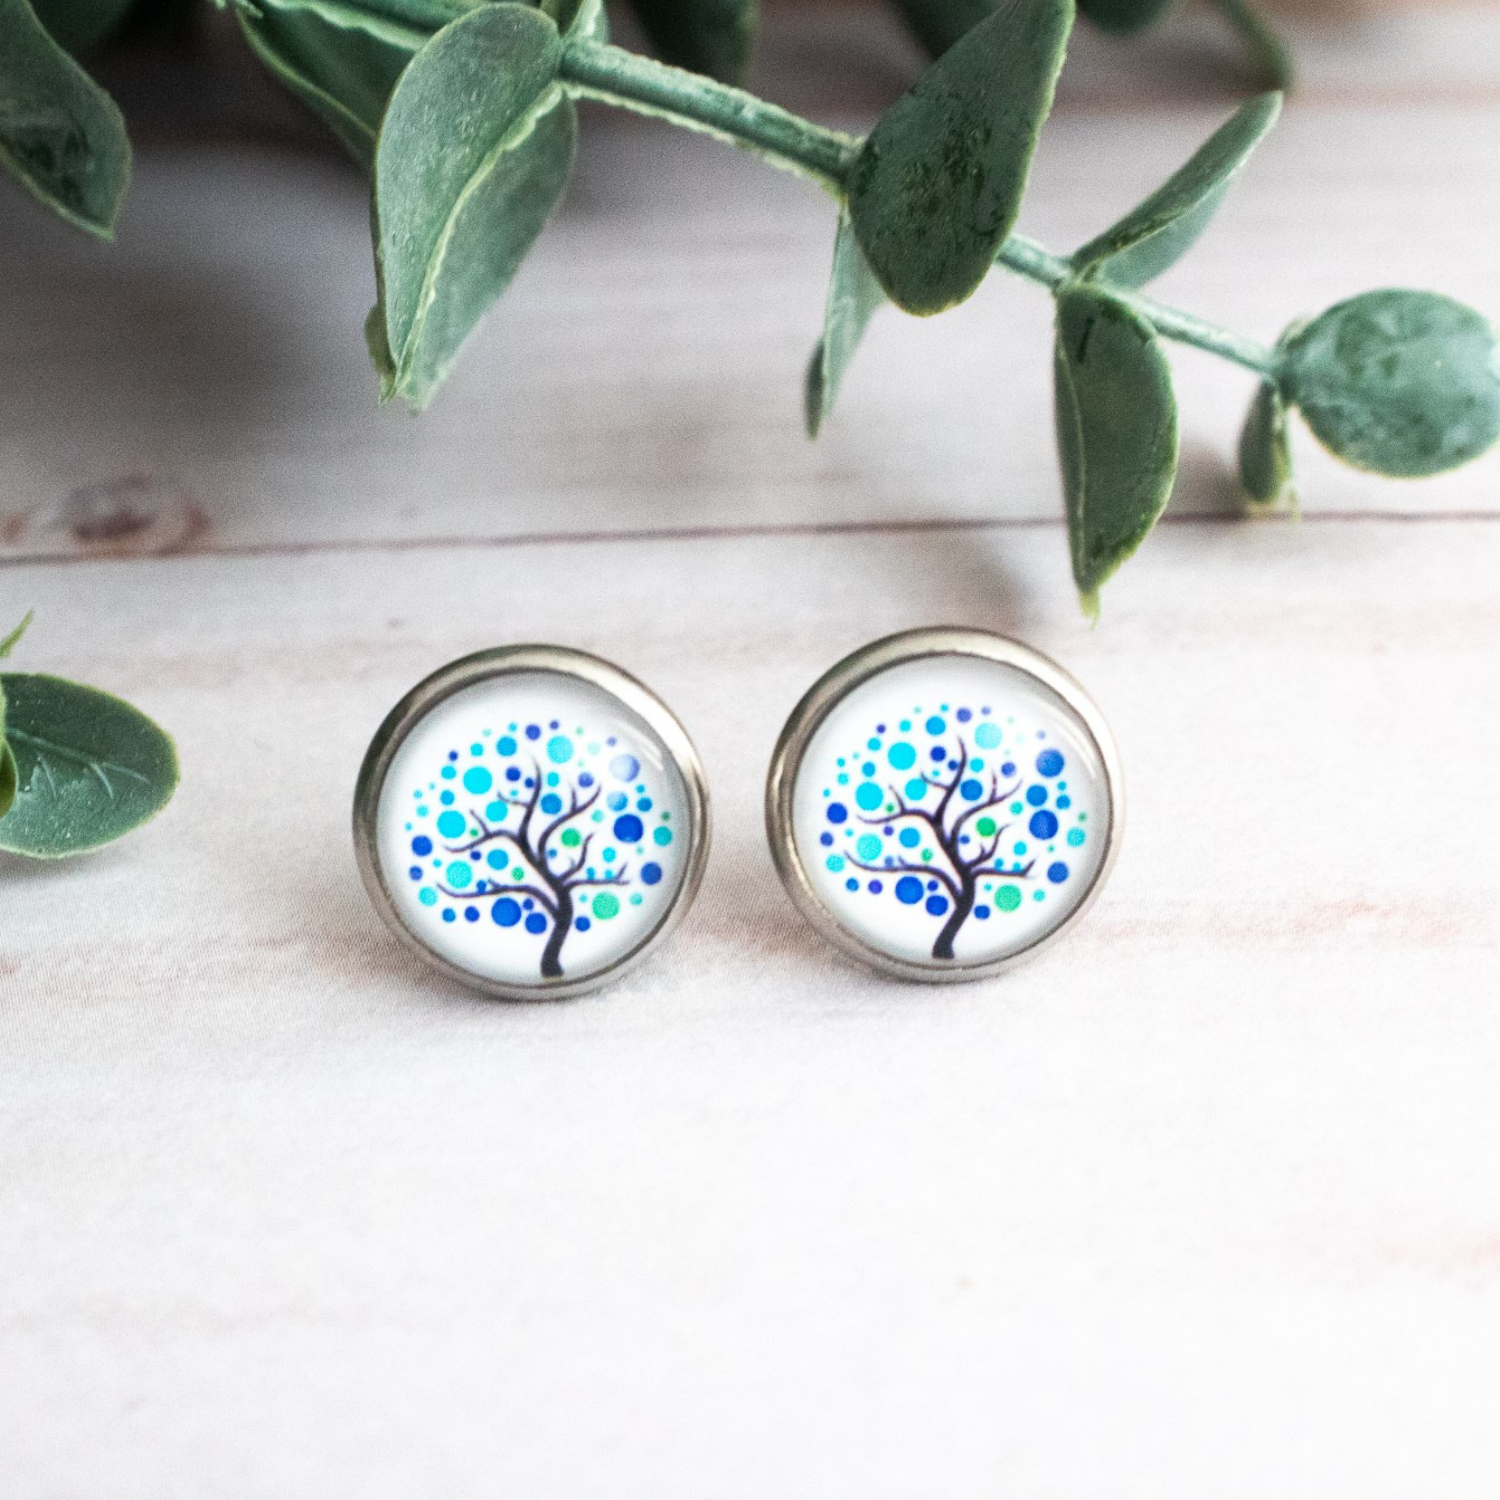 BLUE TREES EARRINGS